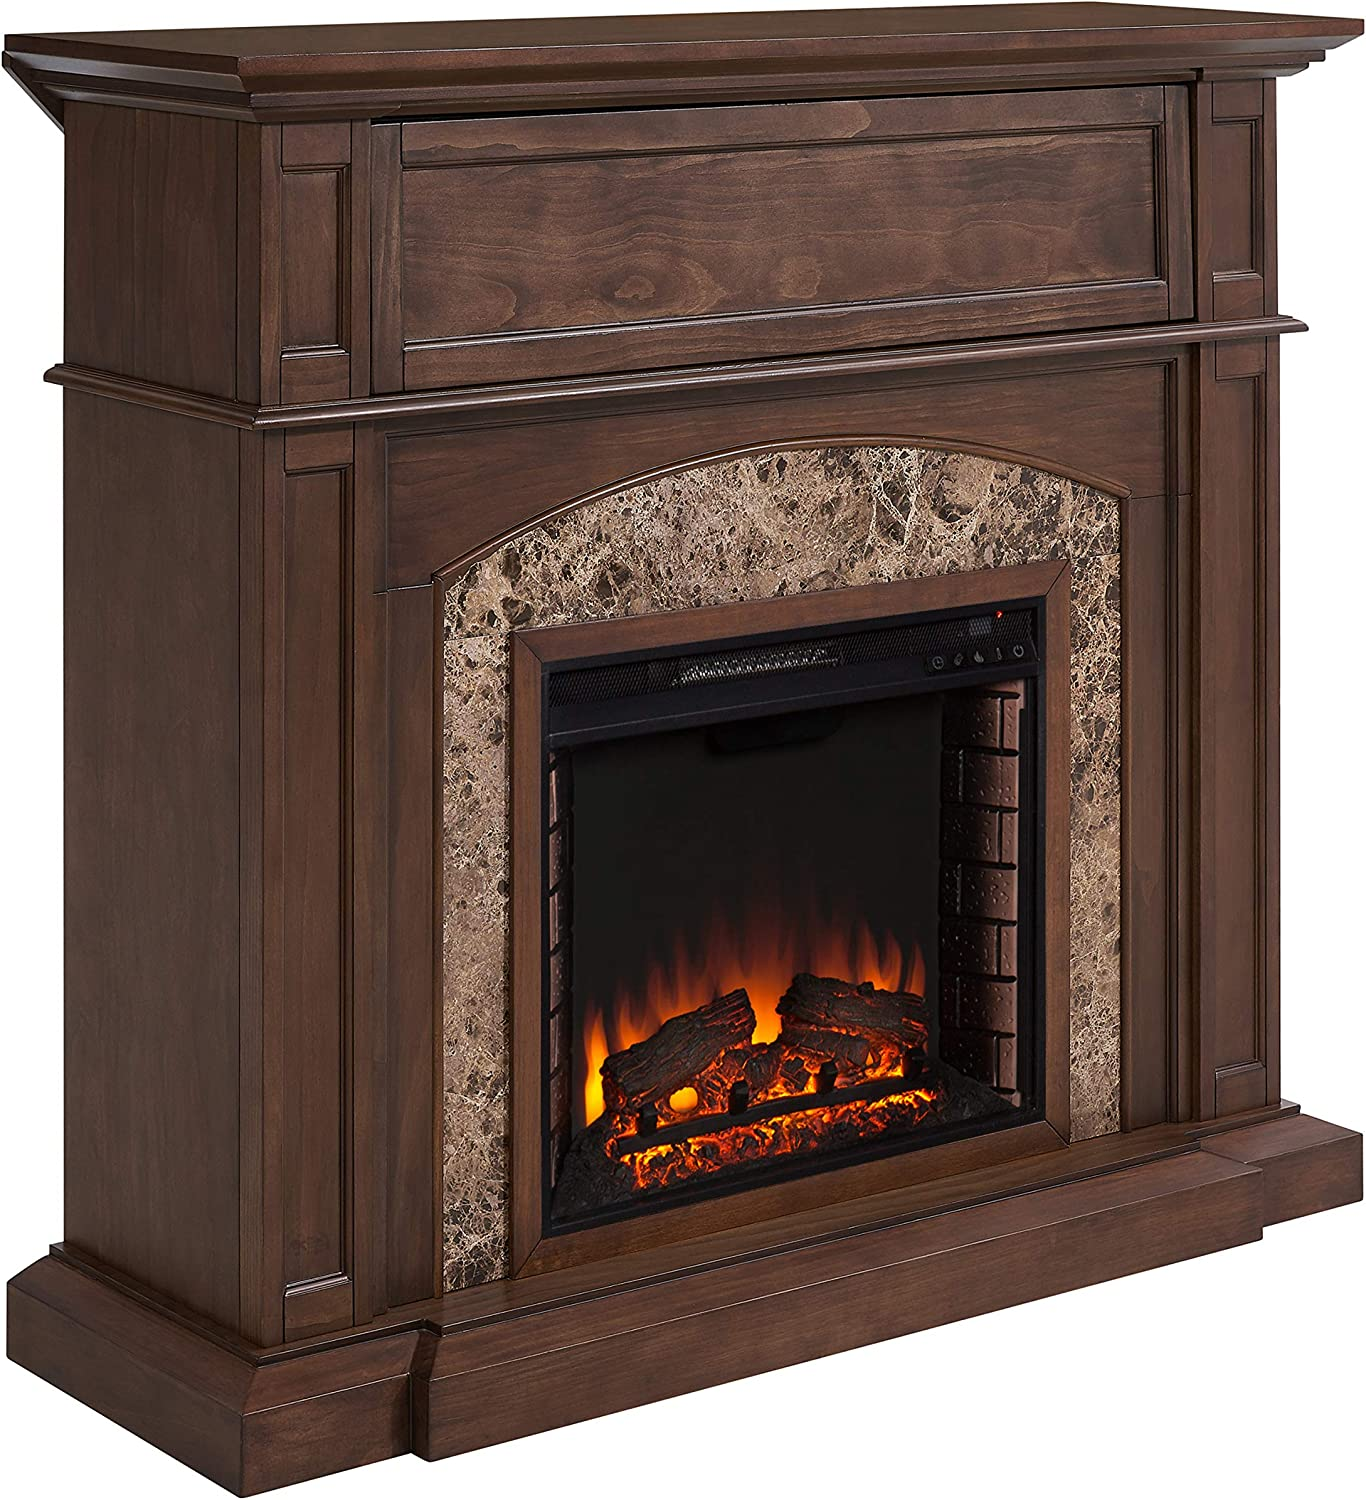 SEI Furniture Fairthorne Corner Convertible Hidden Media Shelf Electric Fireplace, Tuscan Pine, Brown Emperador Marble